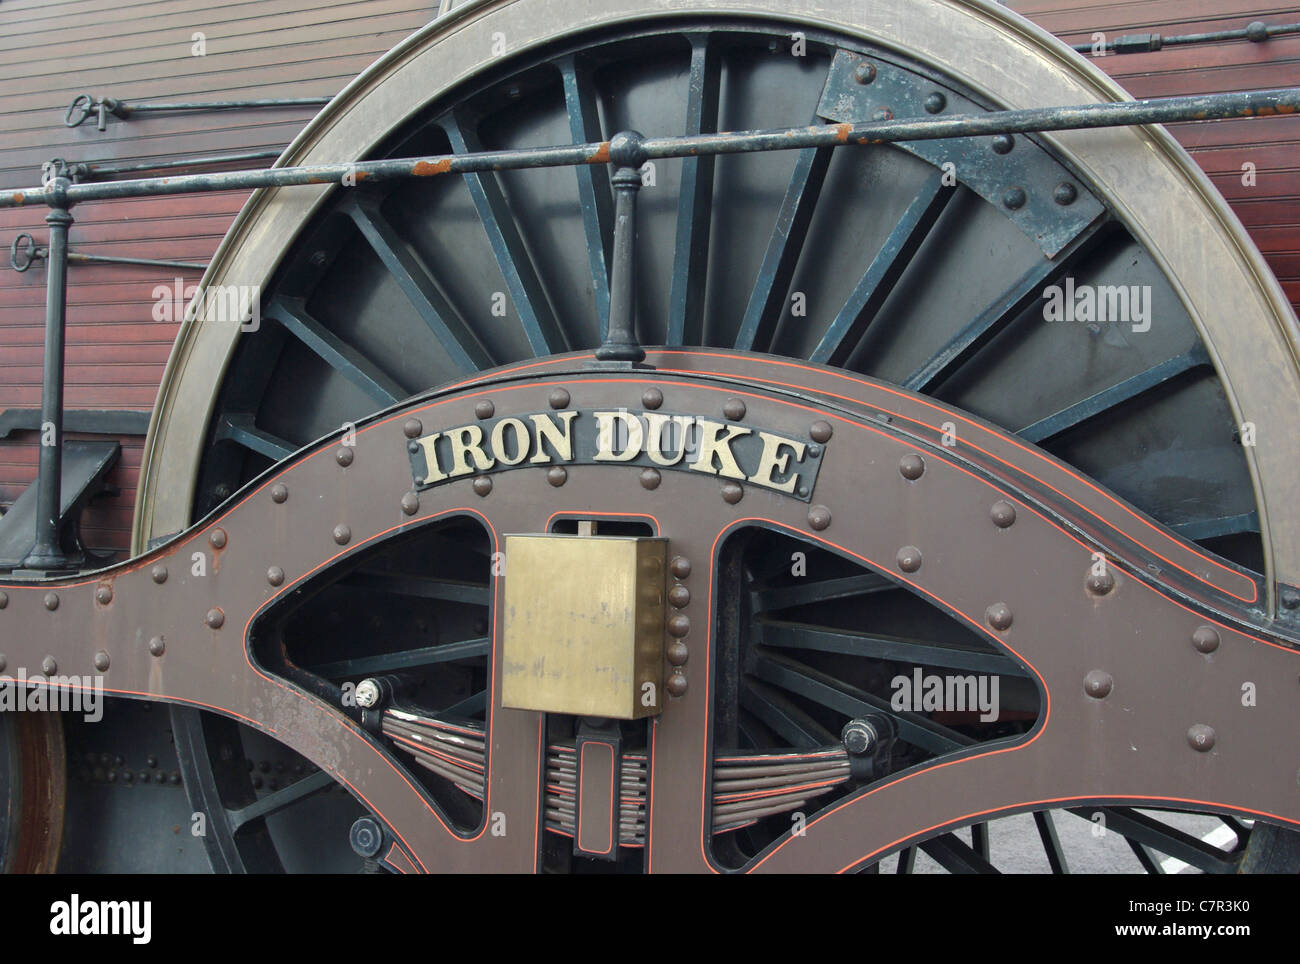 Detail from an old steam locomotive, Iron Duke, in the car park at Toddington Station. - Stock Image